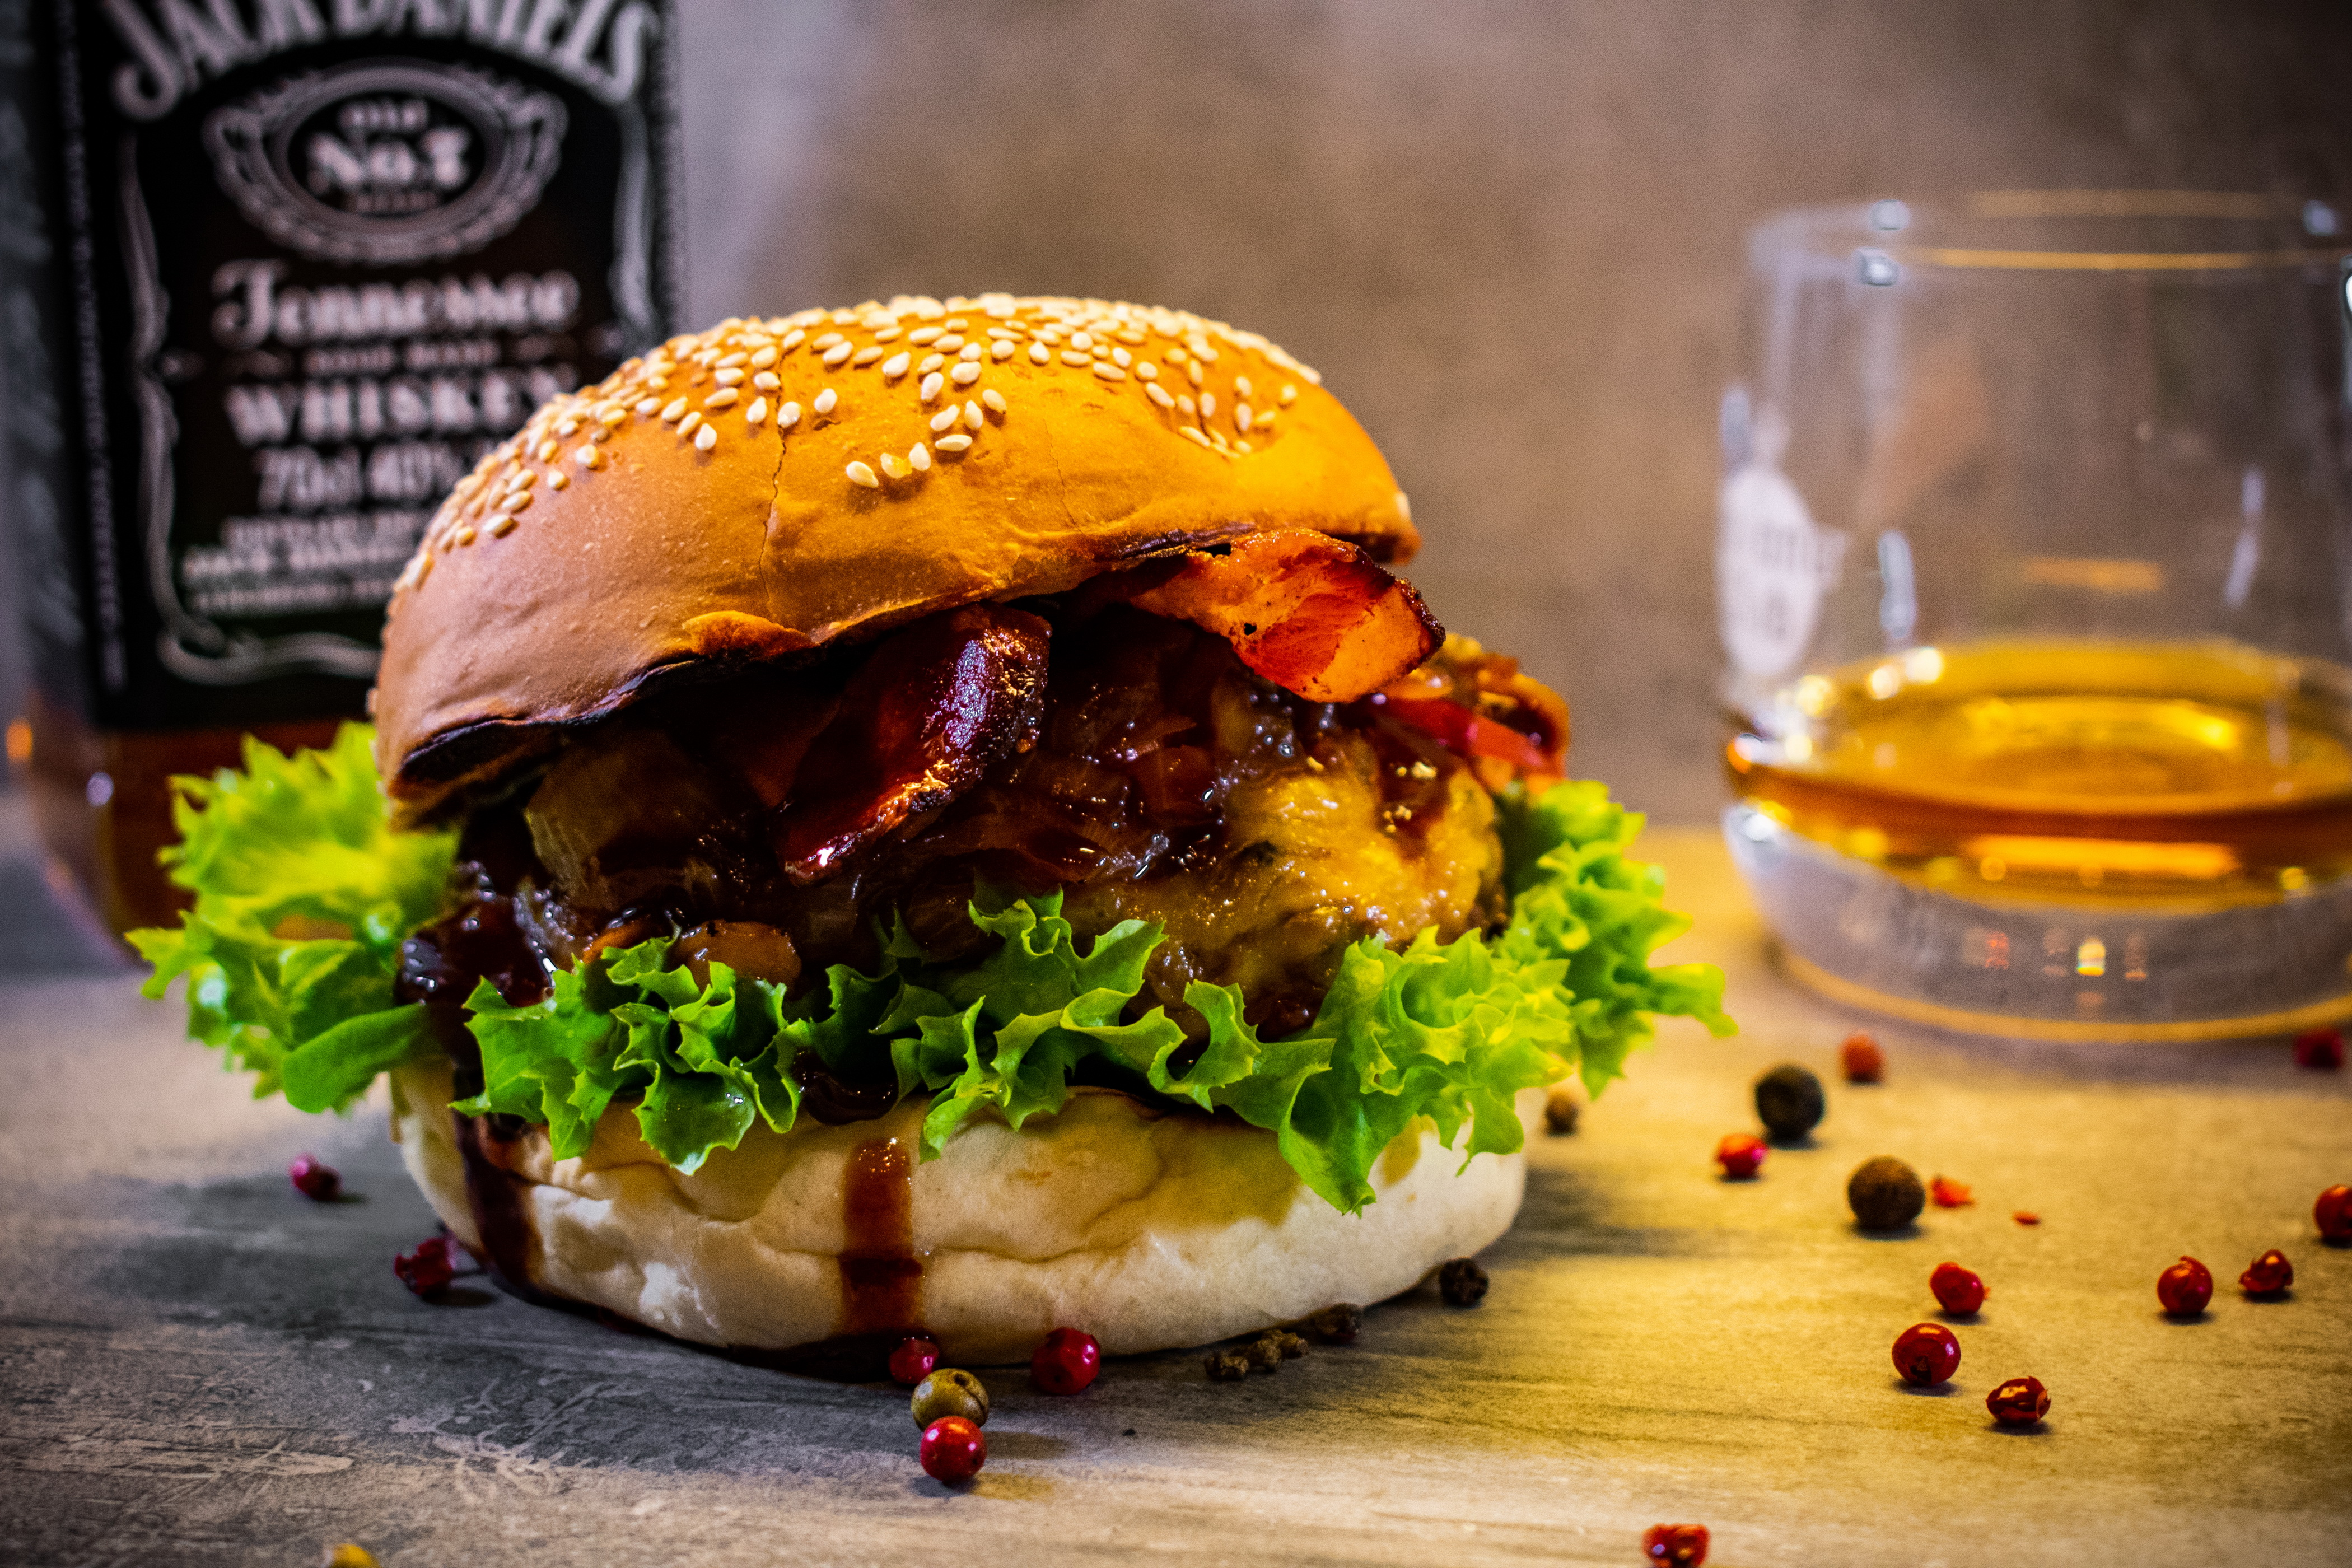 Whisky-Burger Deluxe